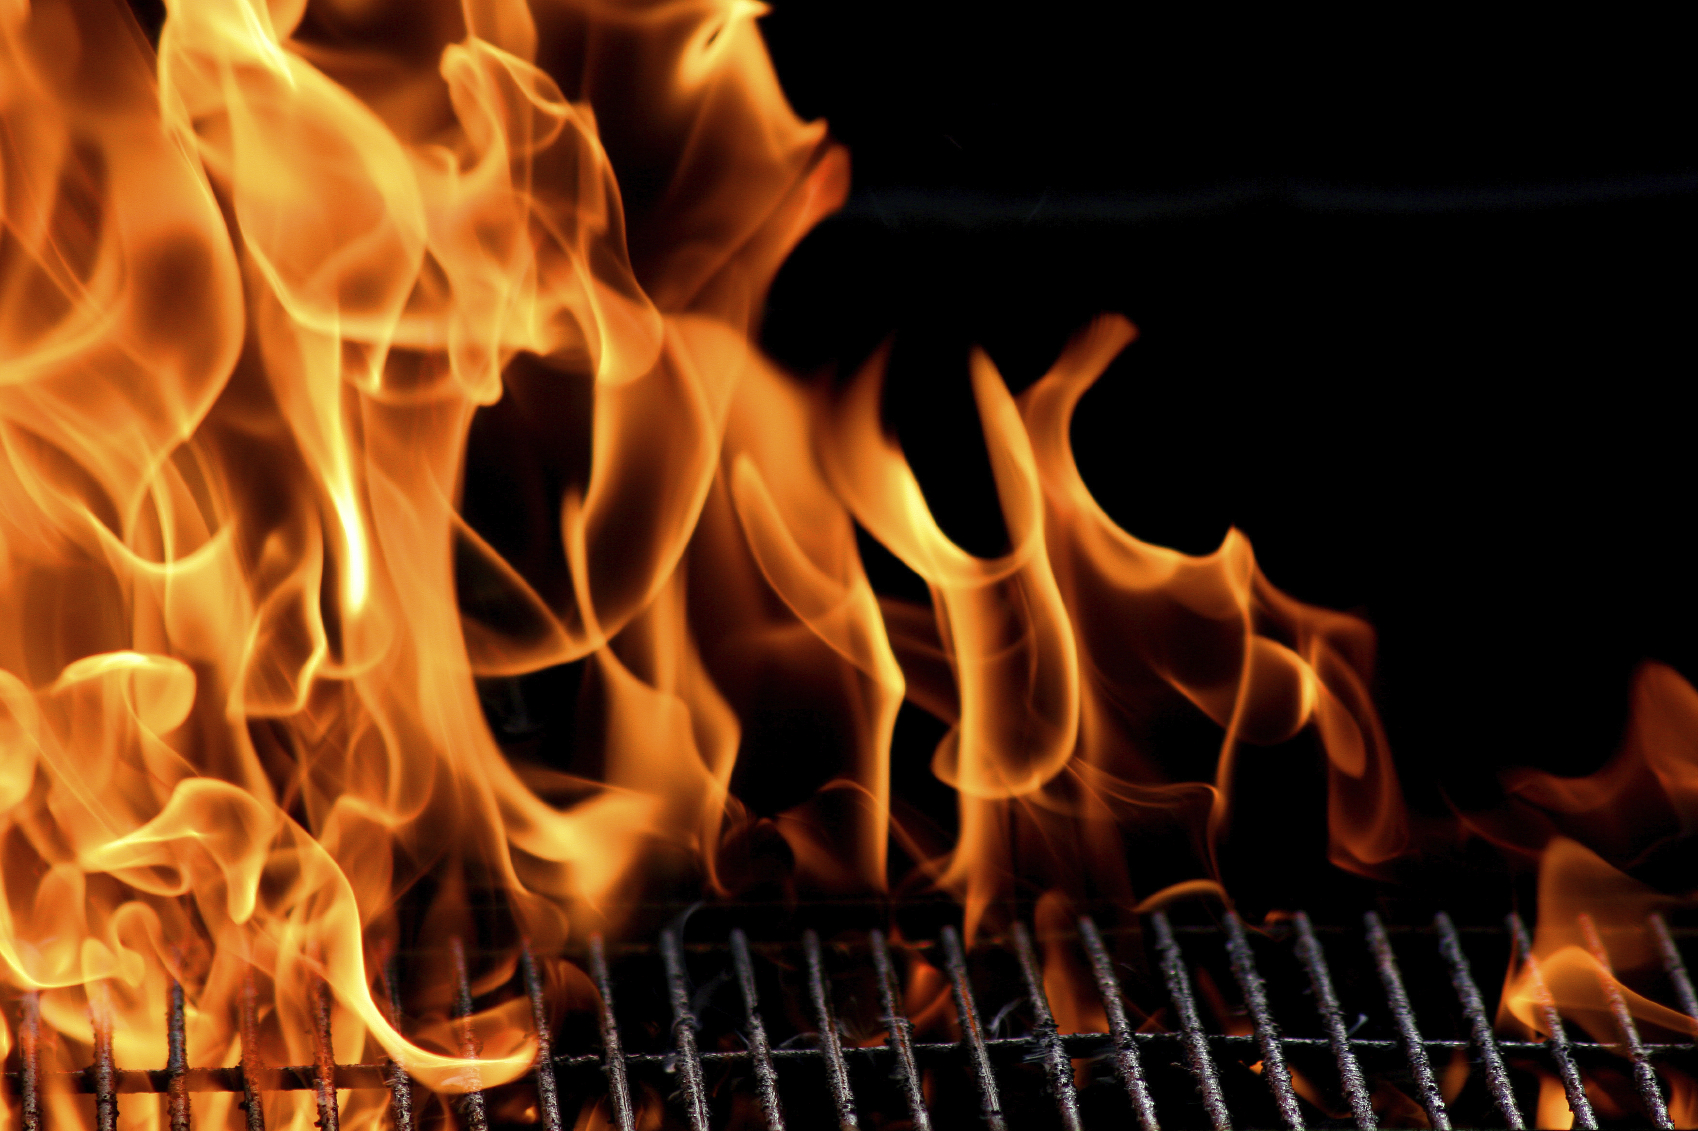 Researchers say this common beverage may keep deadly compounds from forming on grilled meats.